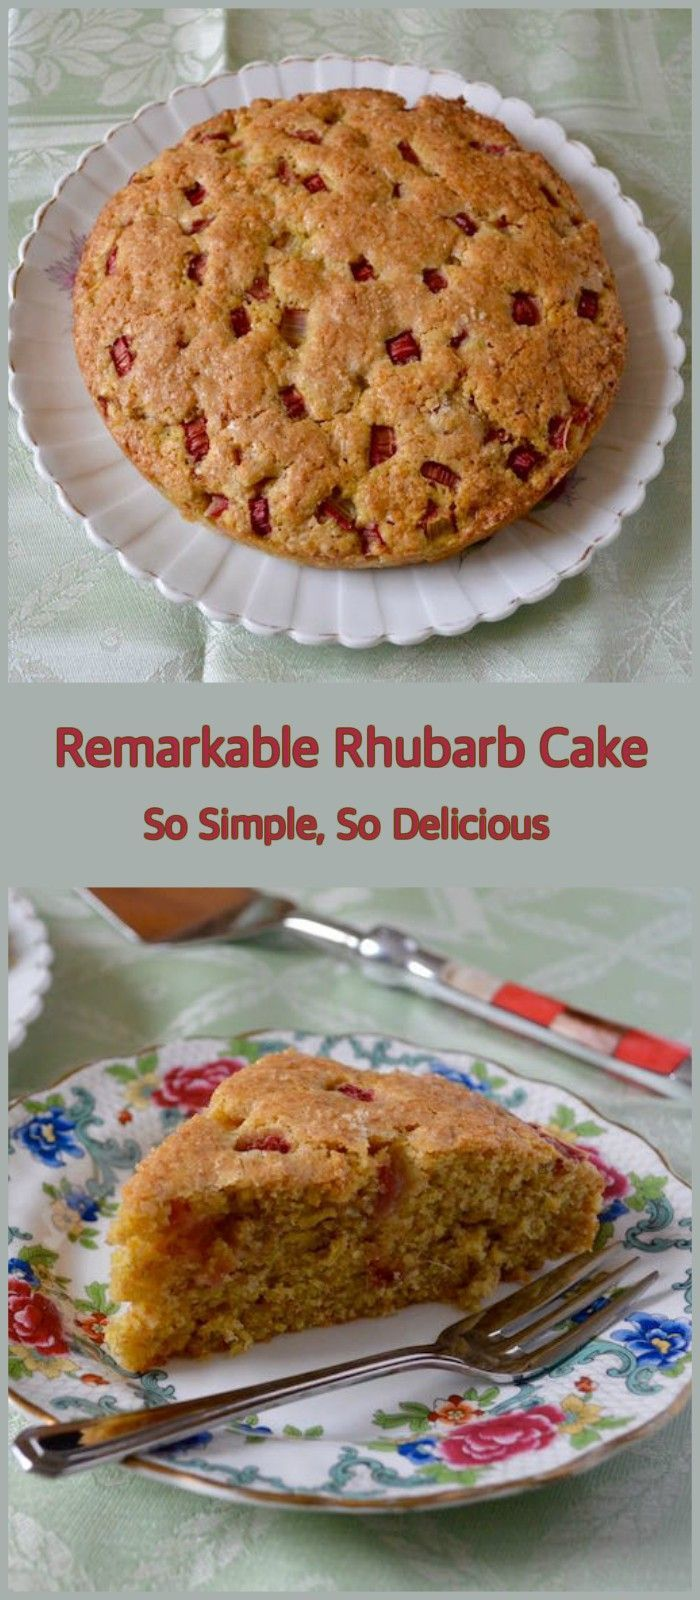 Remarkable Rhubarb Cake. An old-fashioned simple delight. Delicious served as a pudding or for afternoon tea.